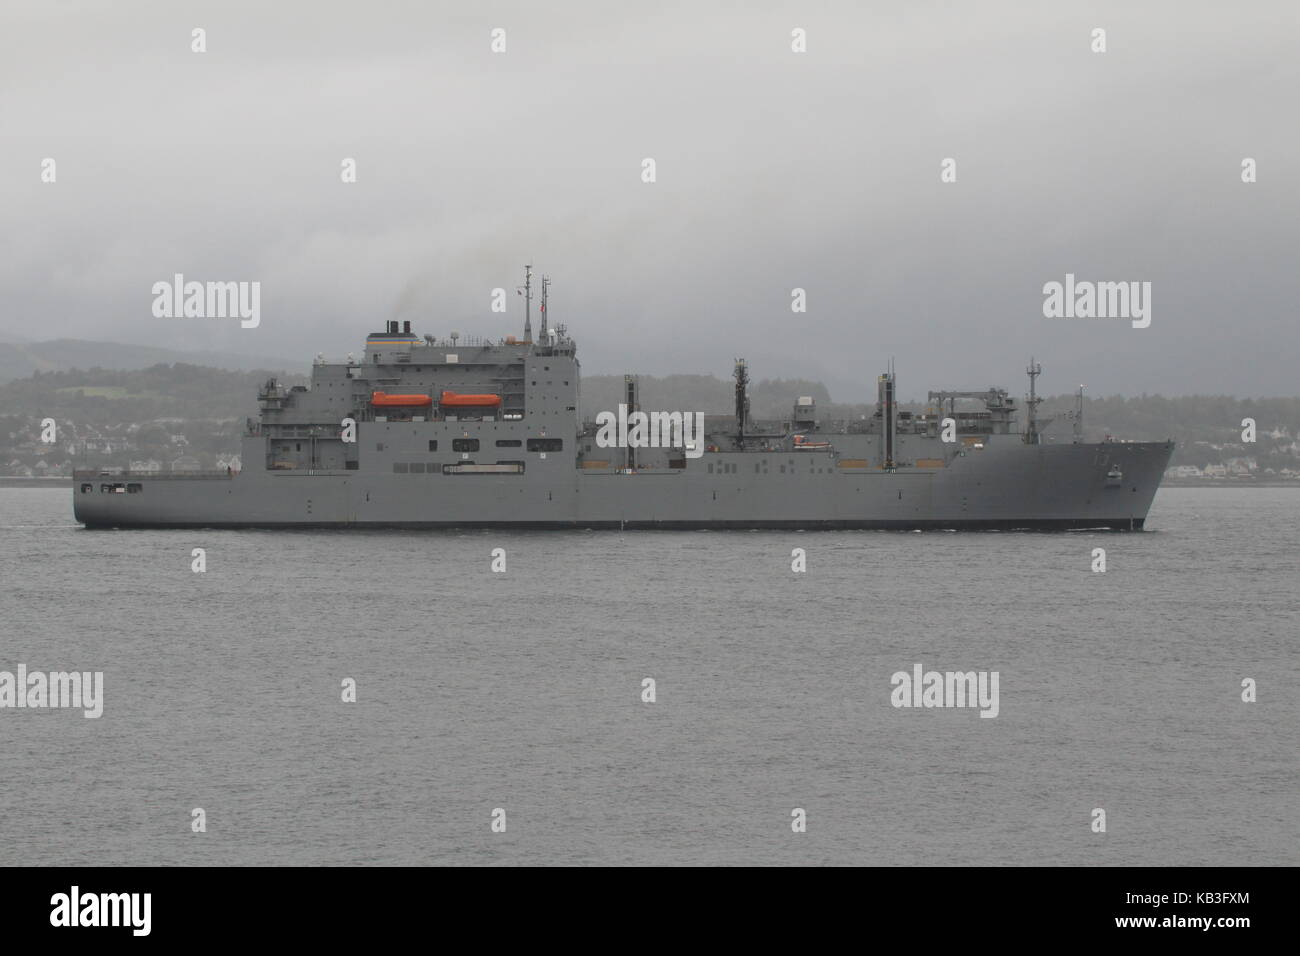 USNS Medgar Evers (T-AKE-13), a Lewis and Clark-class dry cargo vessel operated by the US Navy, arriving for Exercise Stock Photo